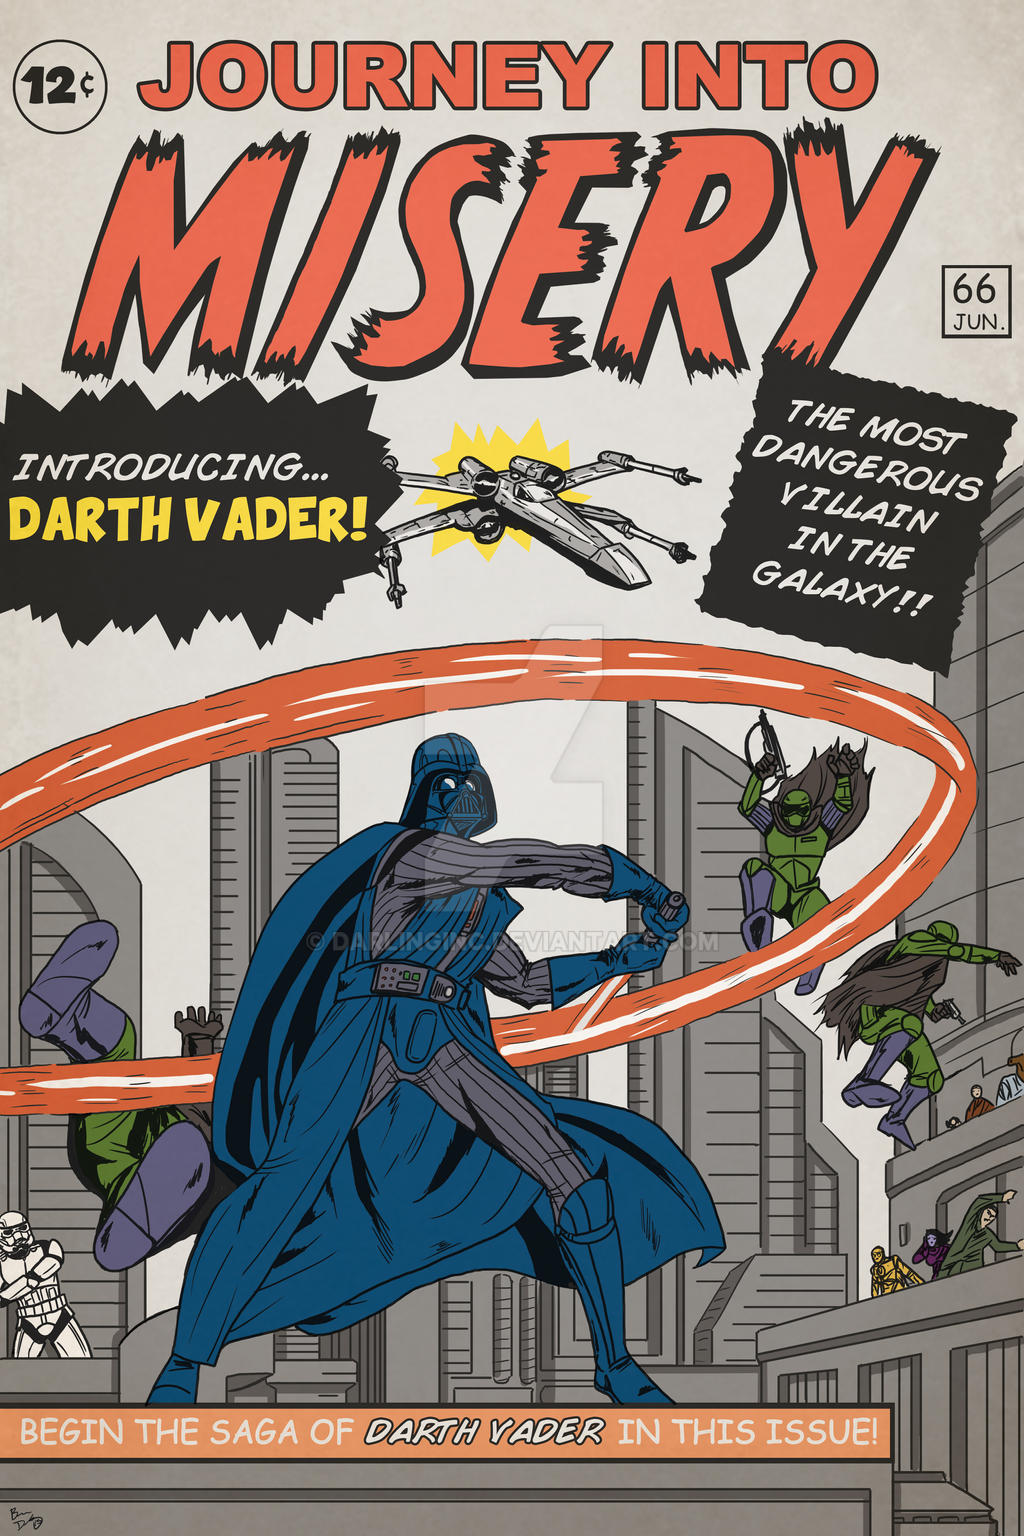 Darth Vader: Journey into Misery by darlinginc